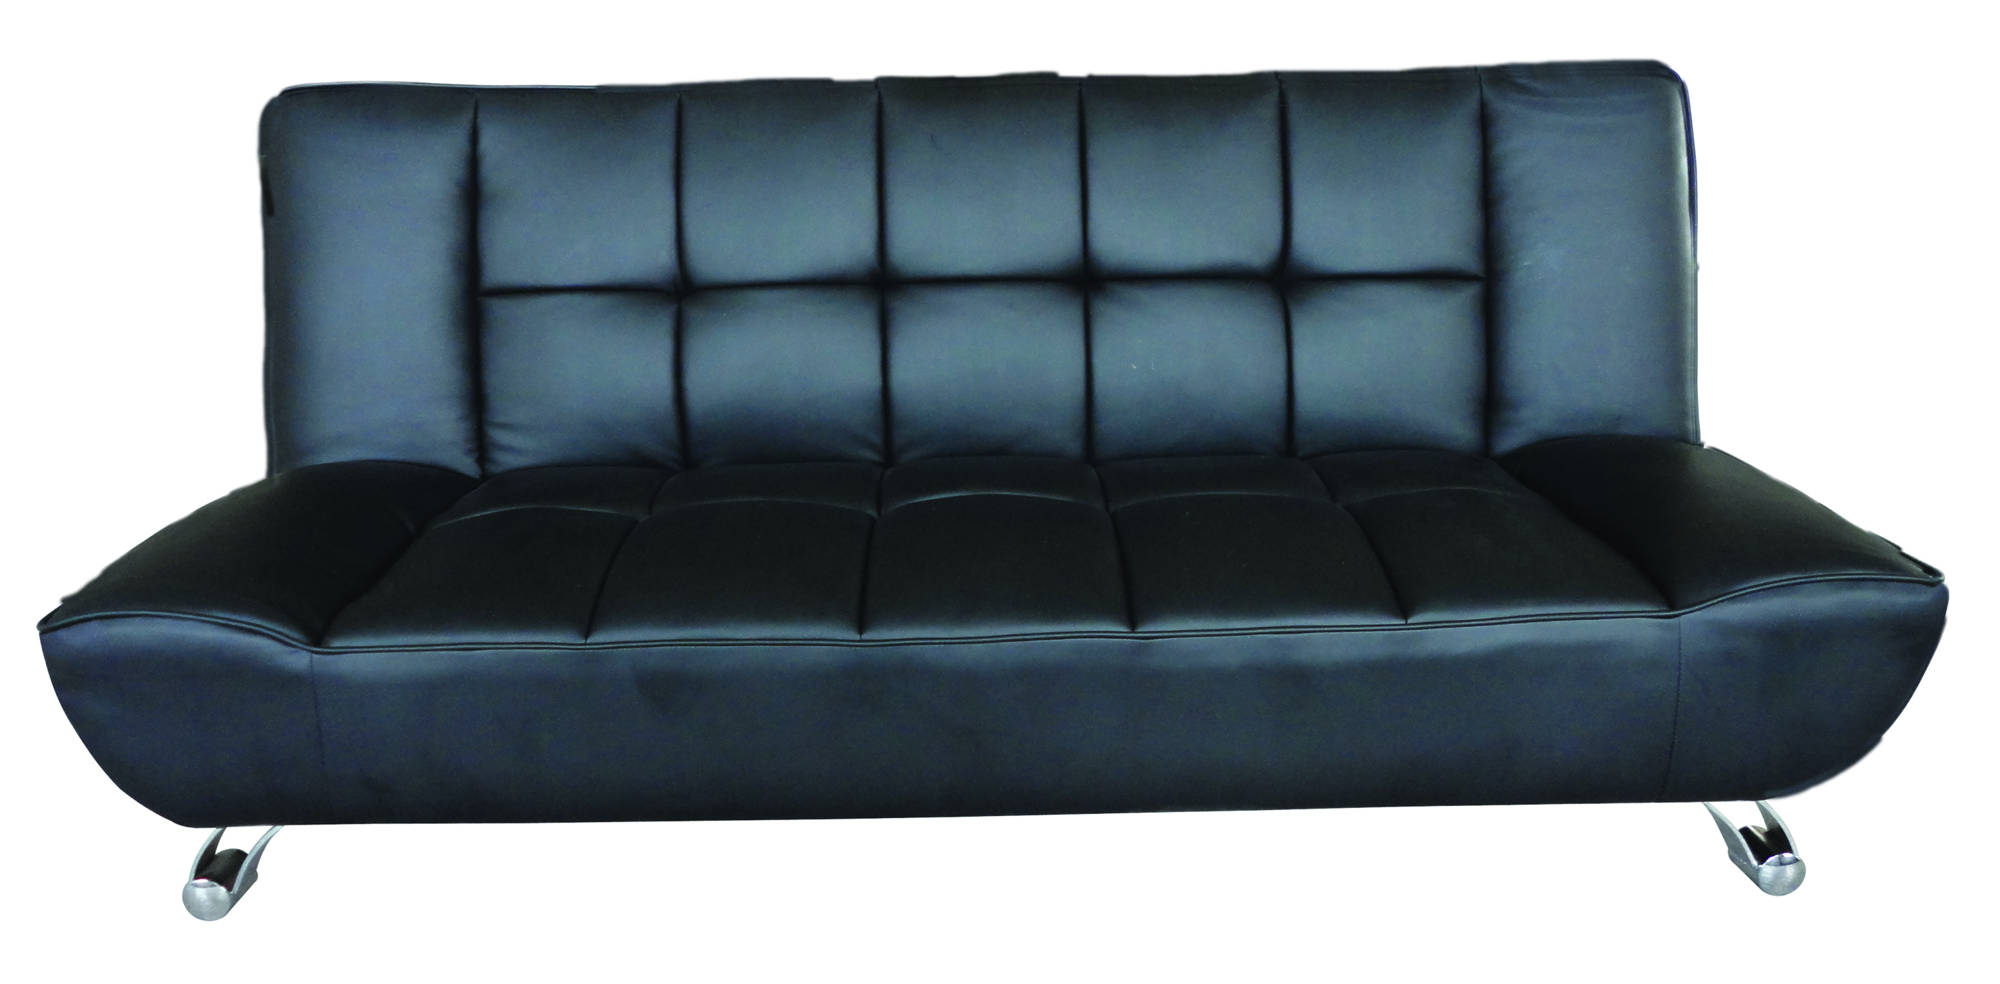 Dernier Sofa Bed in Black - Ezzo